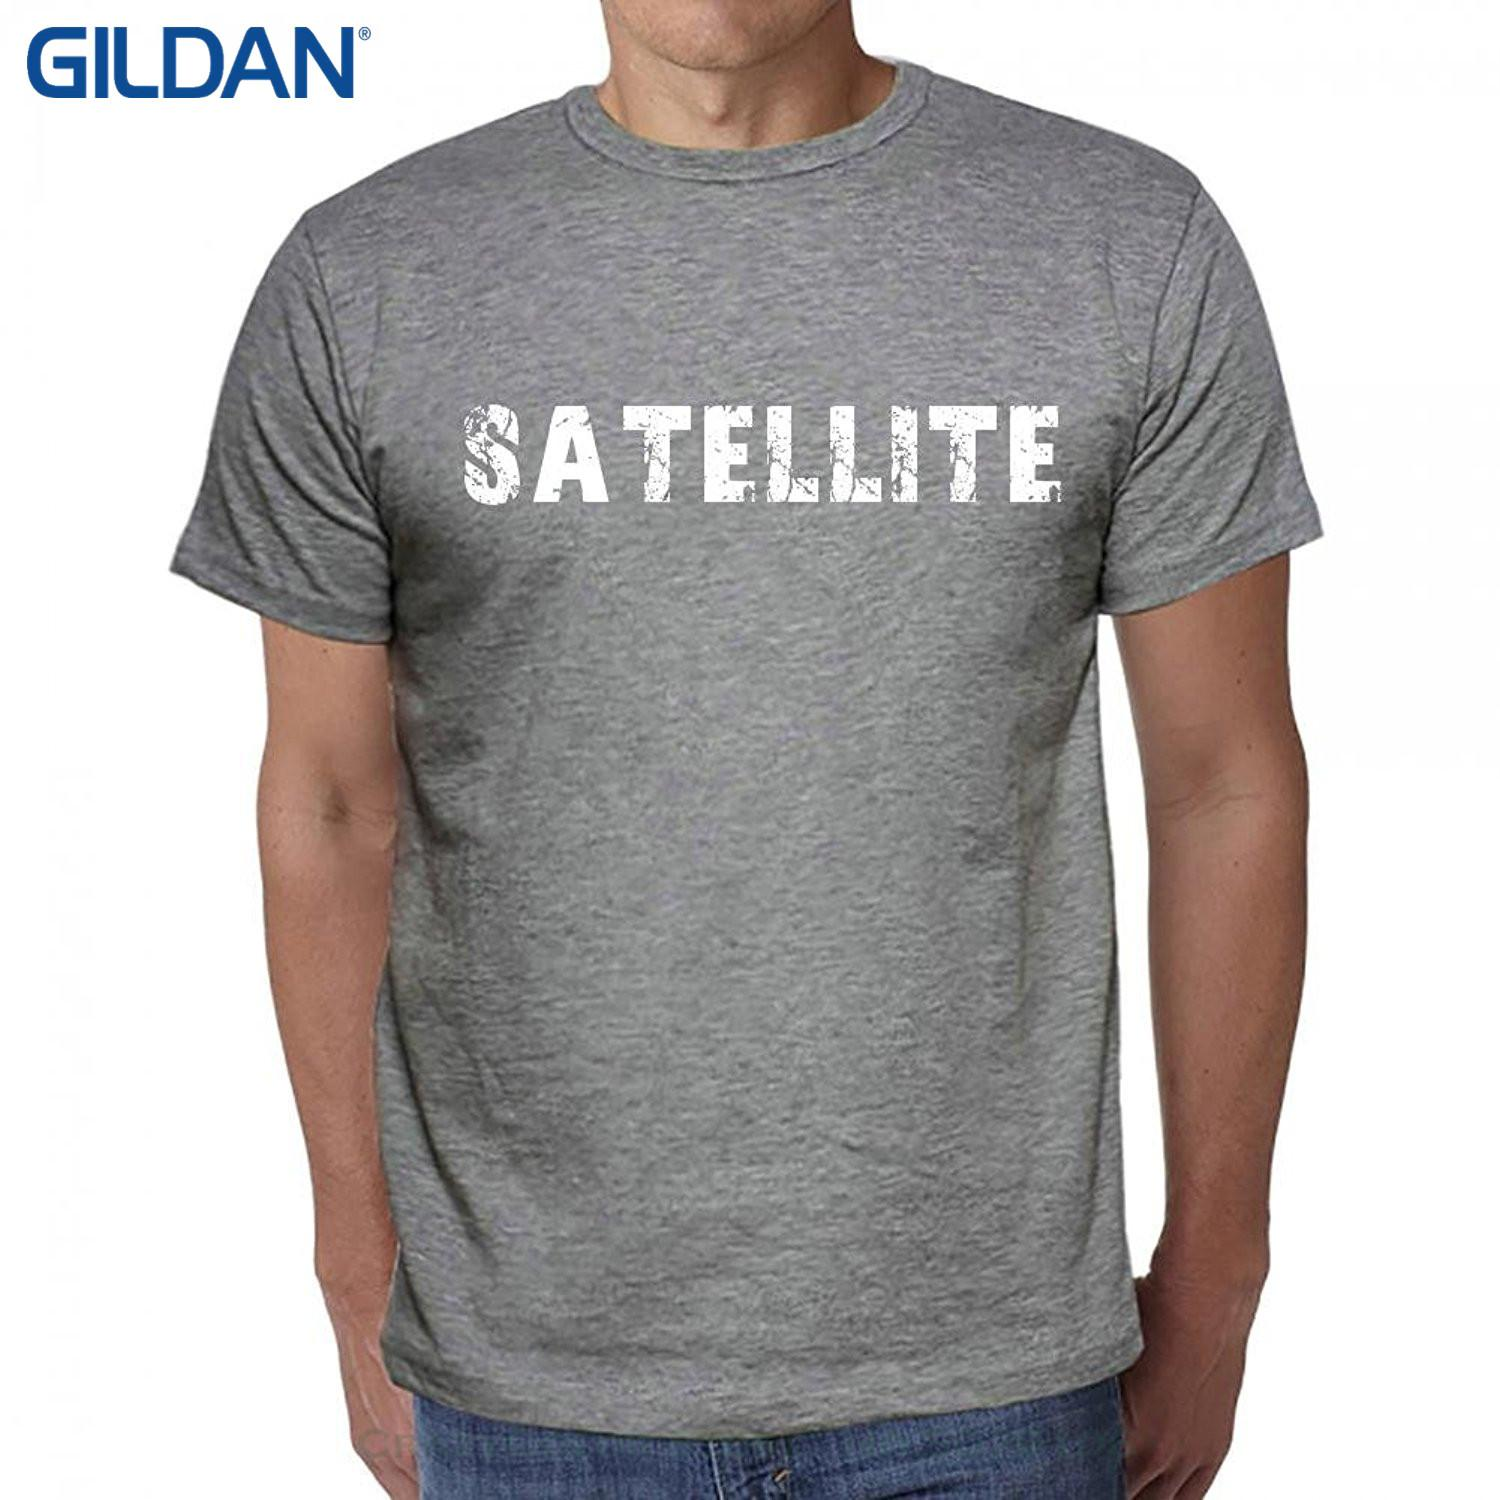 Wholesale Discount T Shirt Design Basic Top Satellite T Shirt With